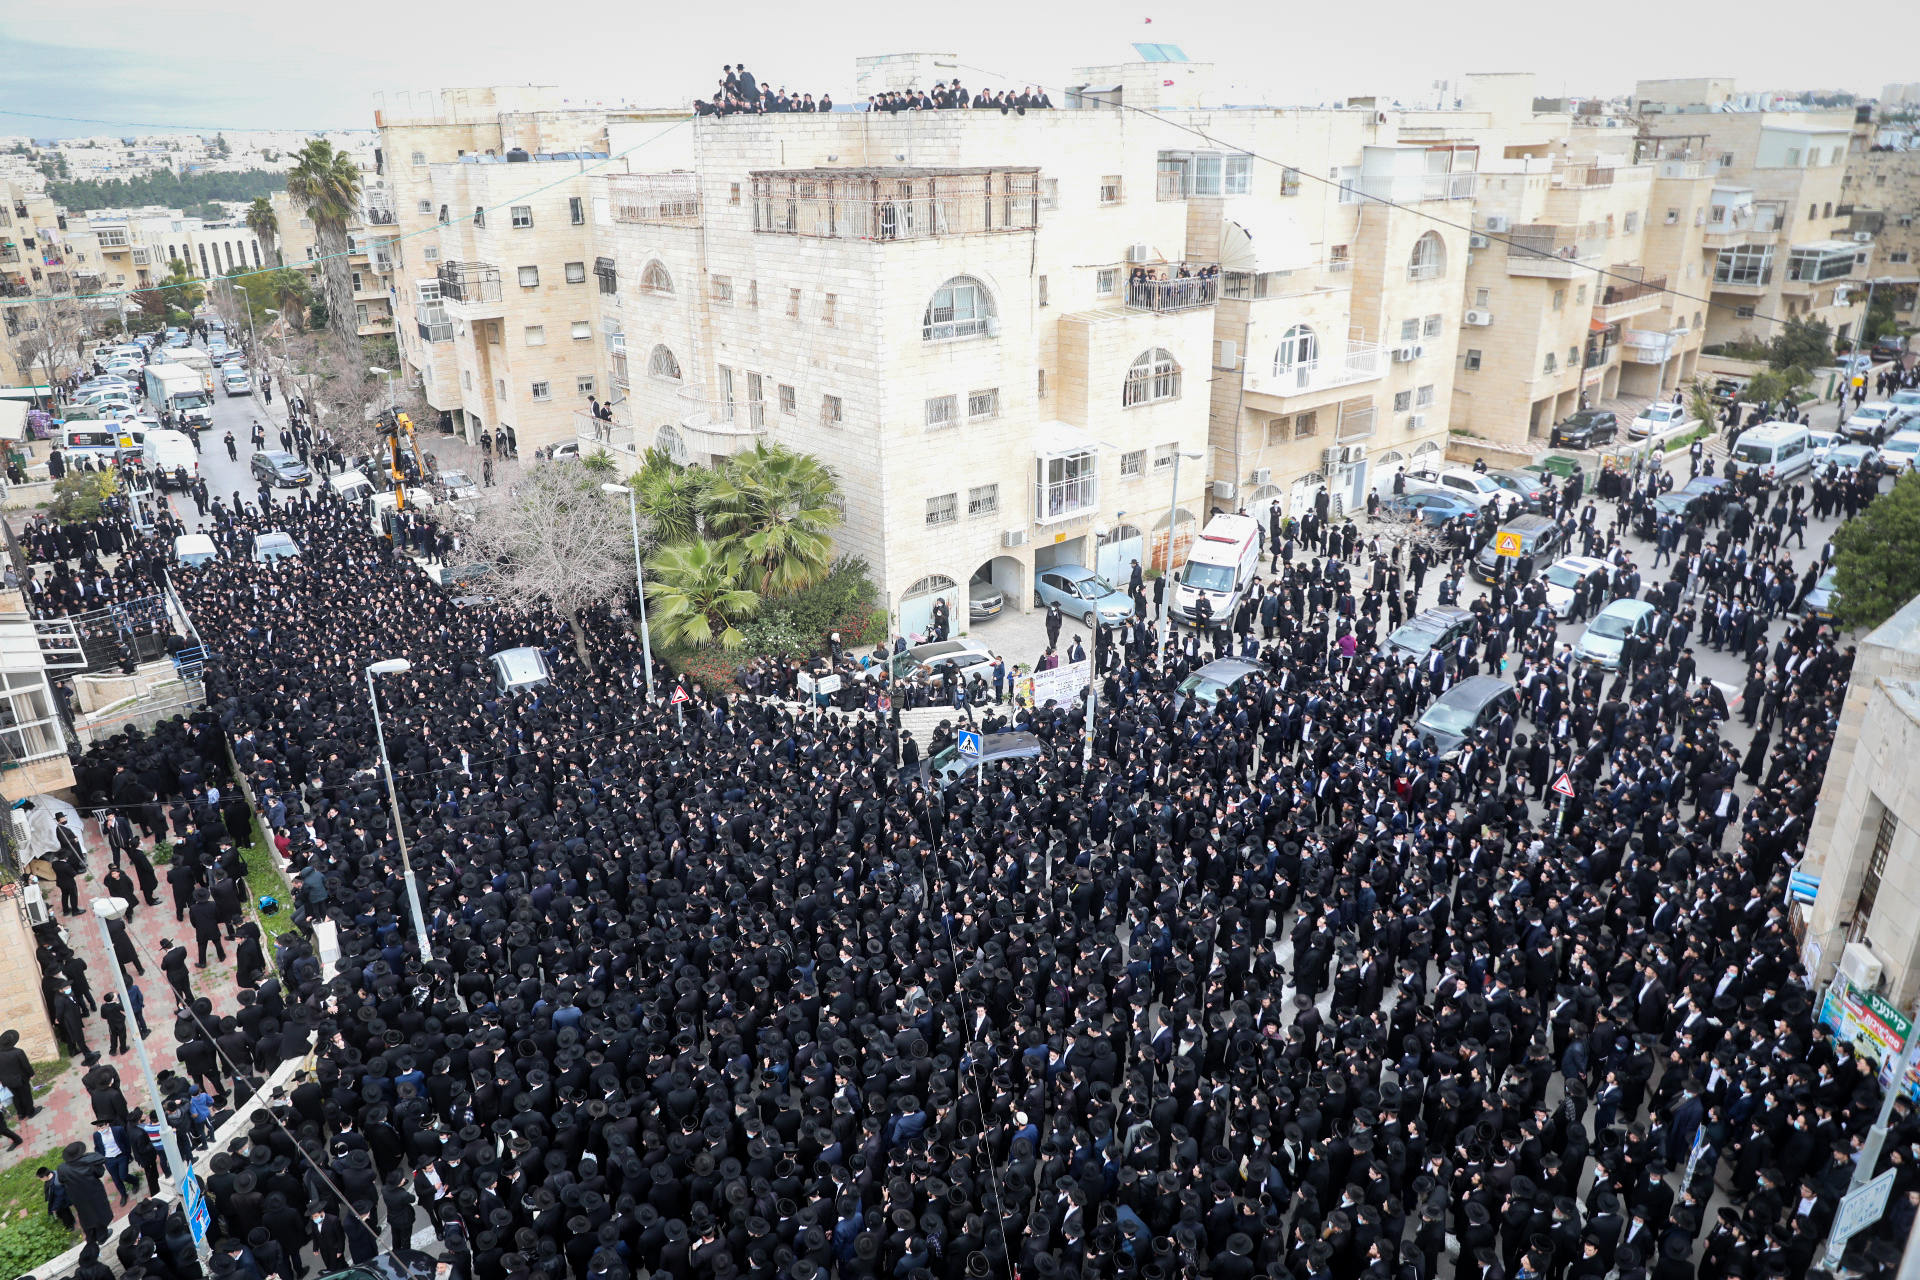 Ultra-Orthodox defy Israel lockdown for rabbi's funeral